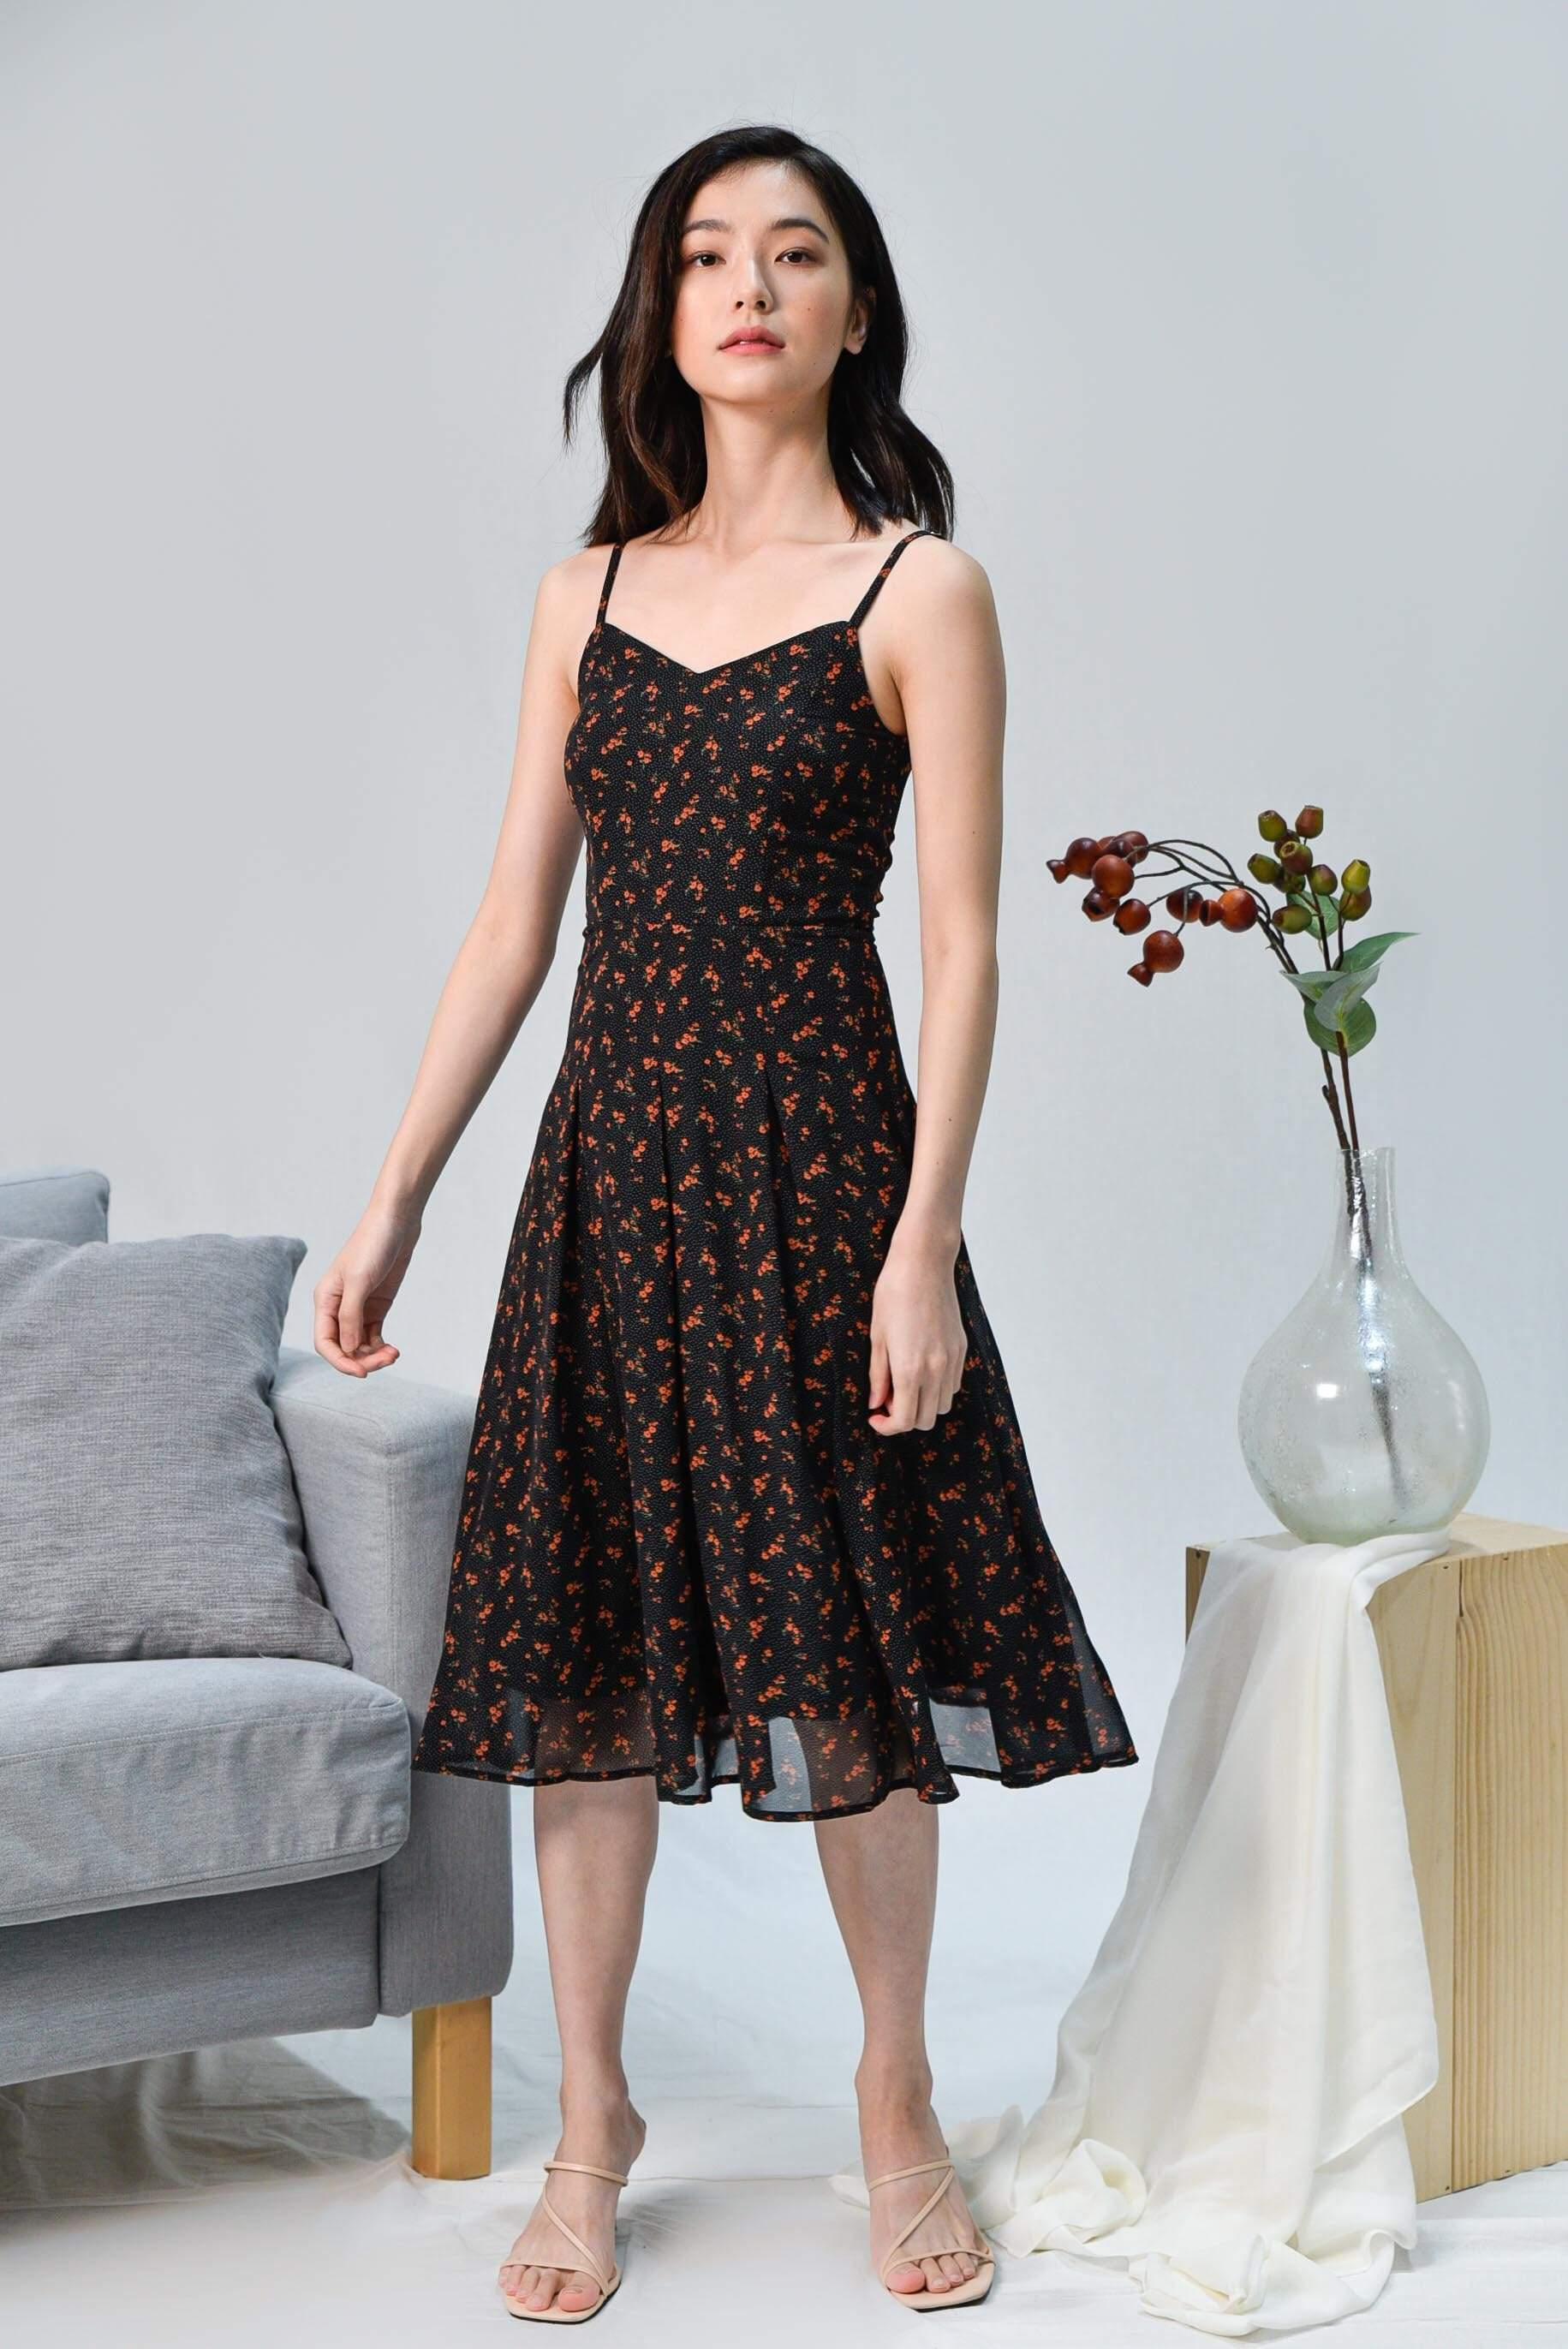 AWE Dresses FRANCES BLACK FLORAL SPAG DRESS